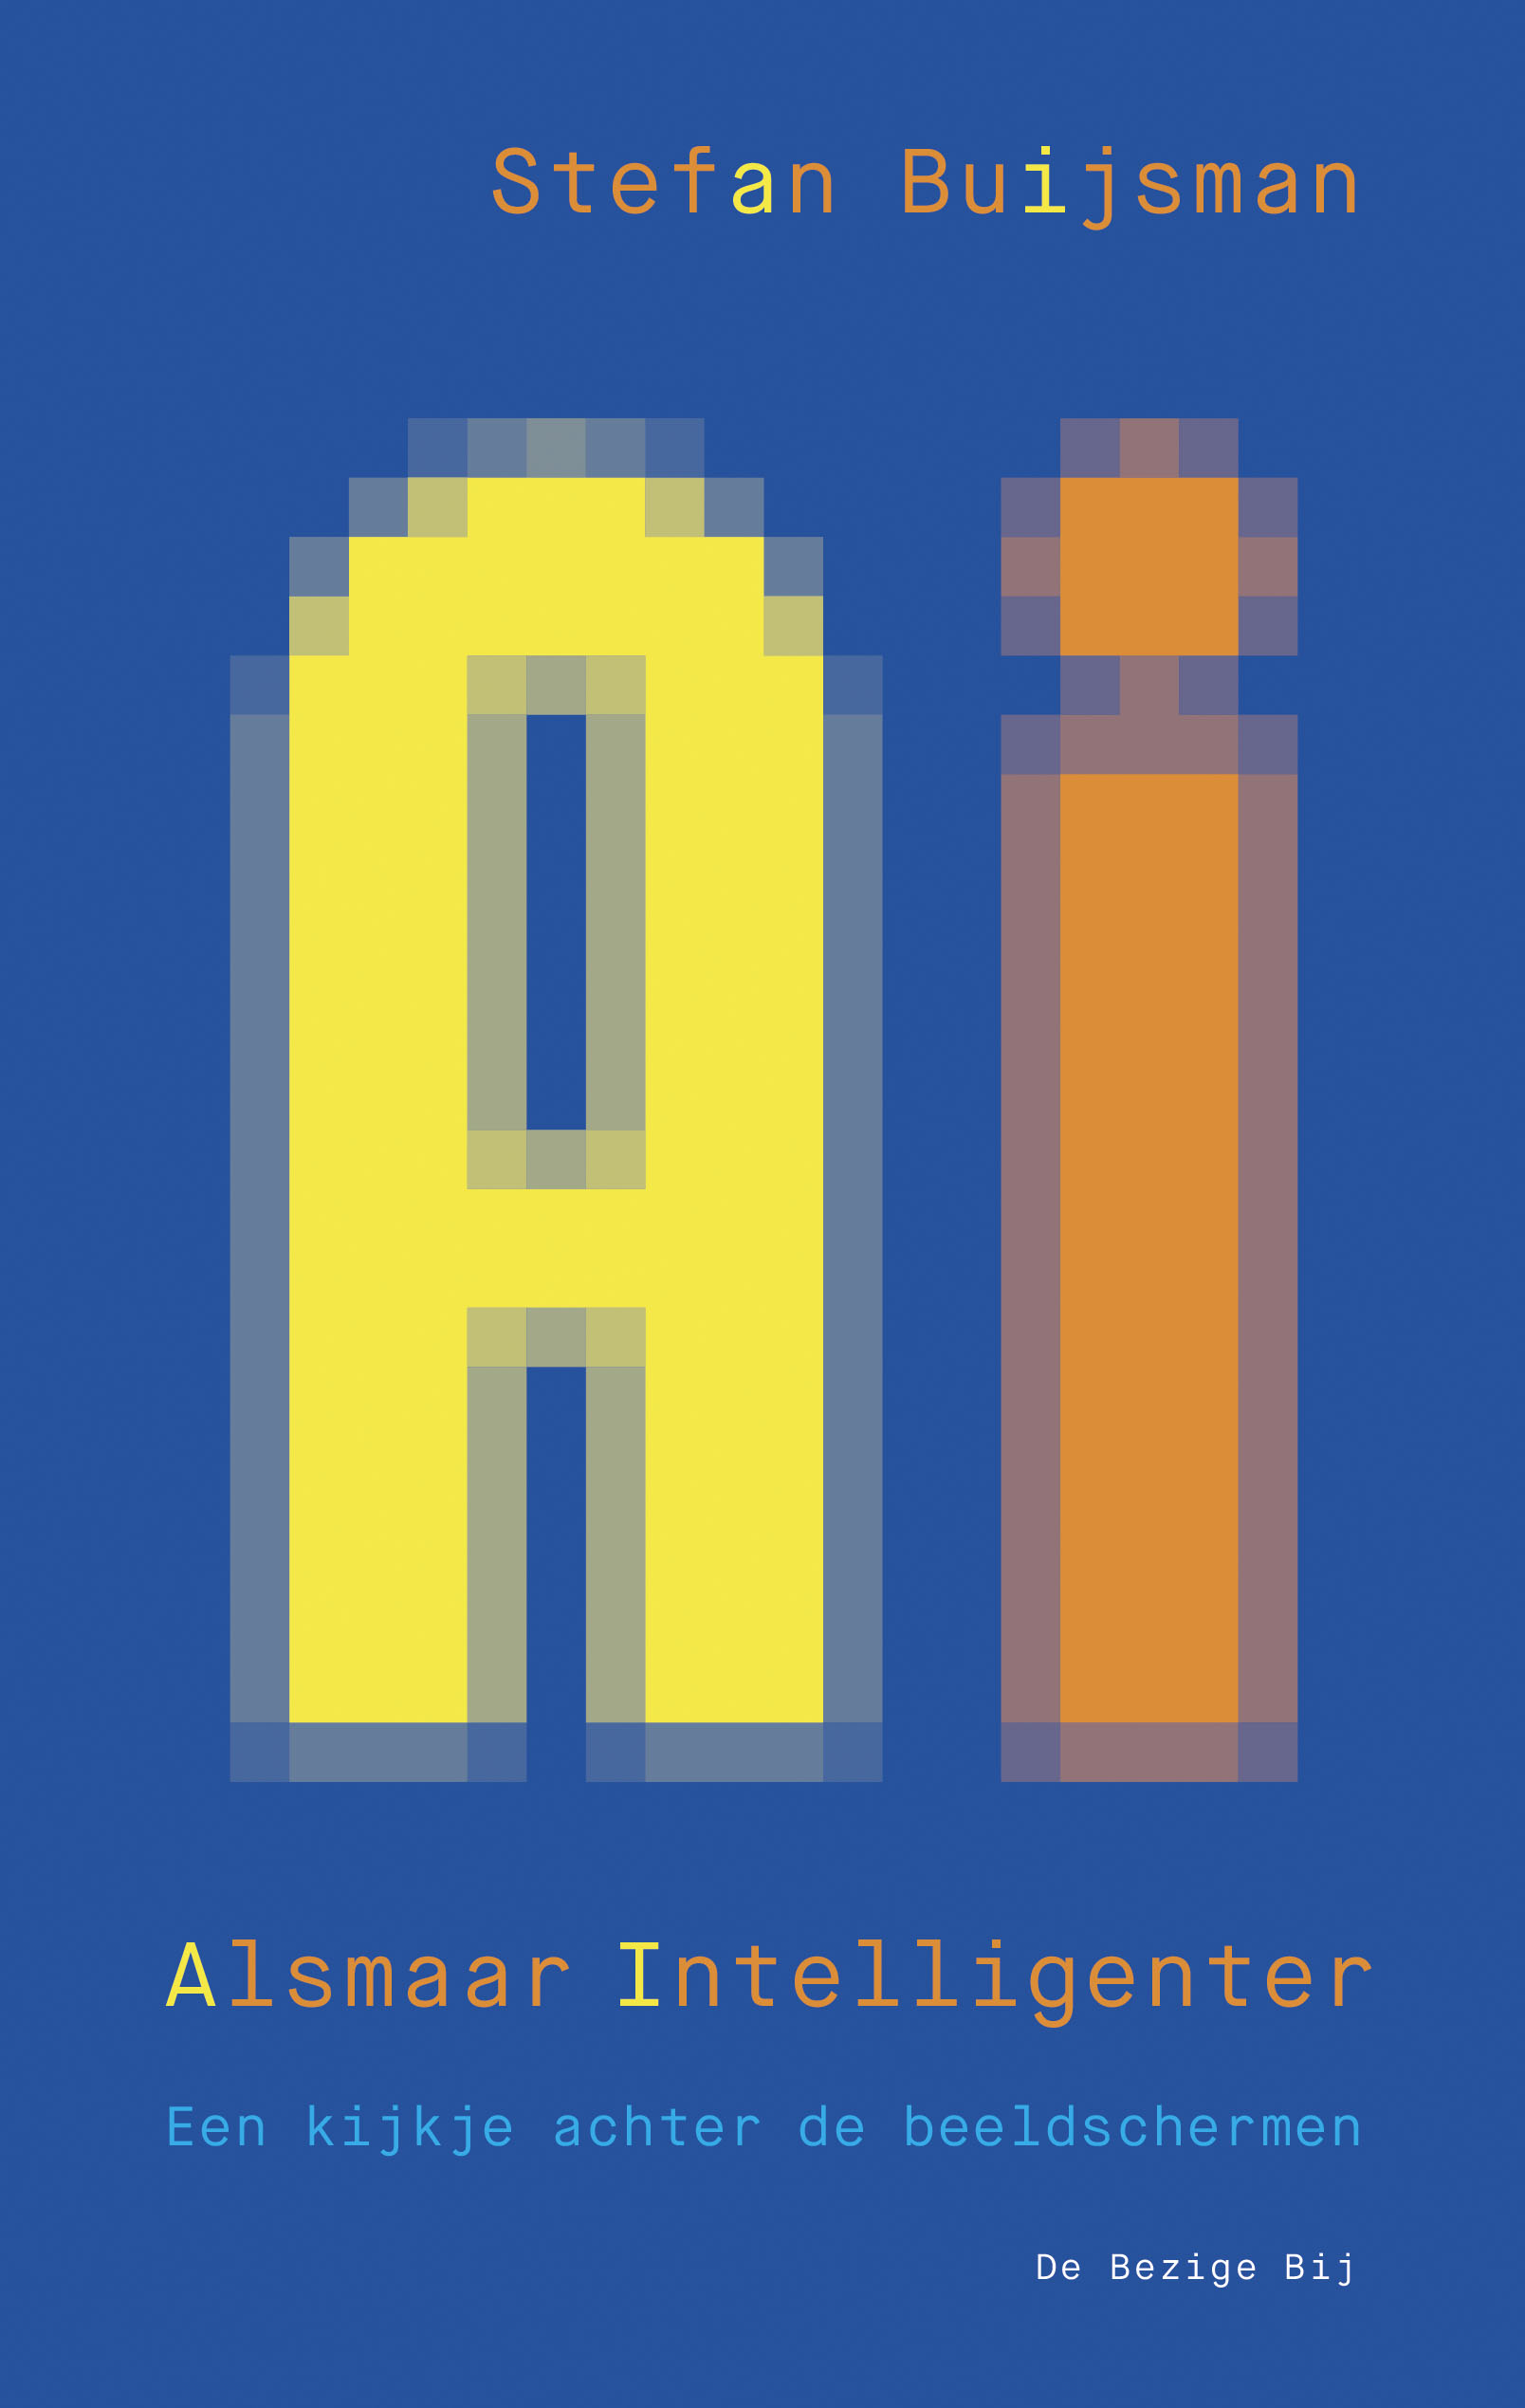 AI: Alsmaar Intelligenter